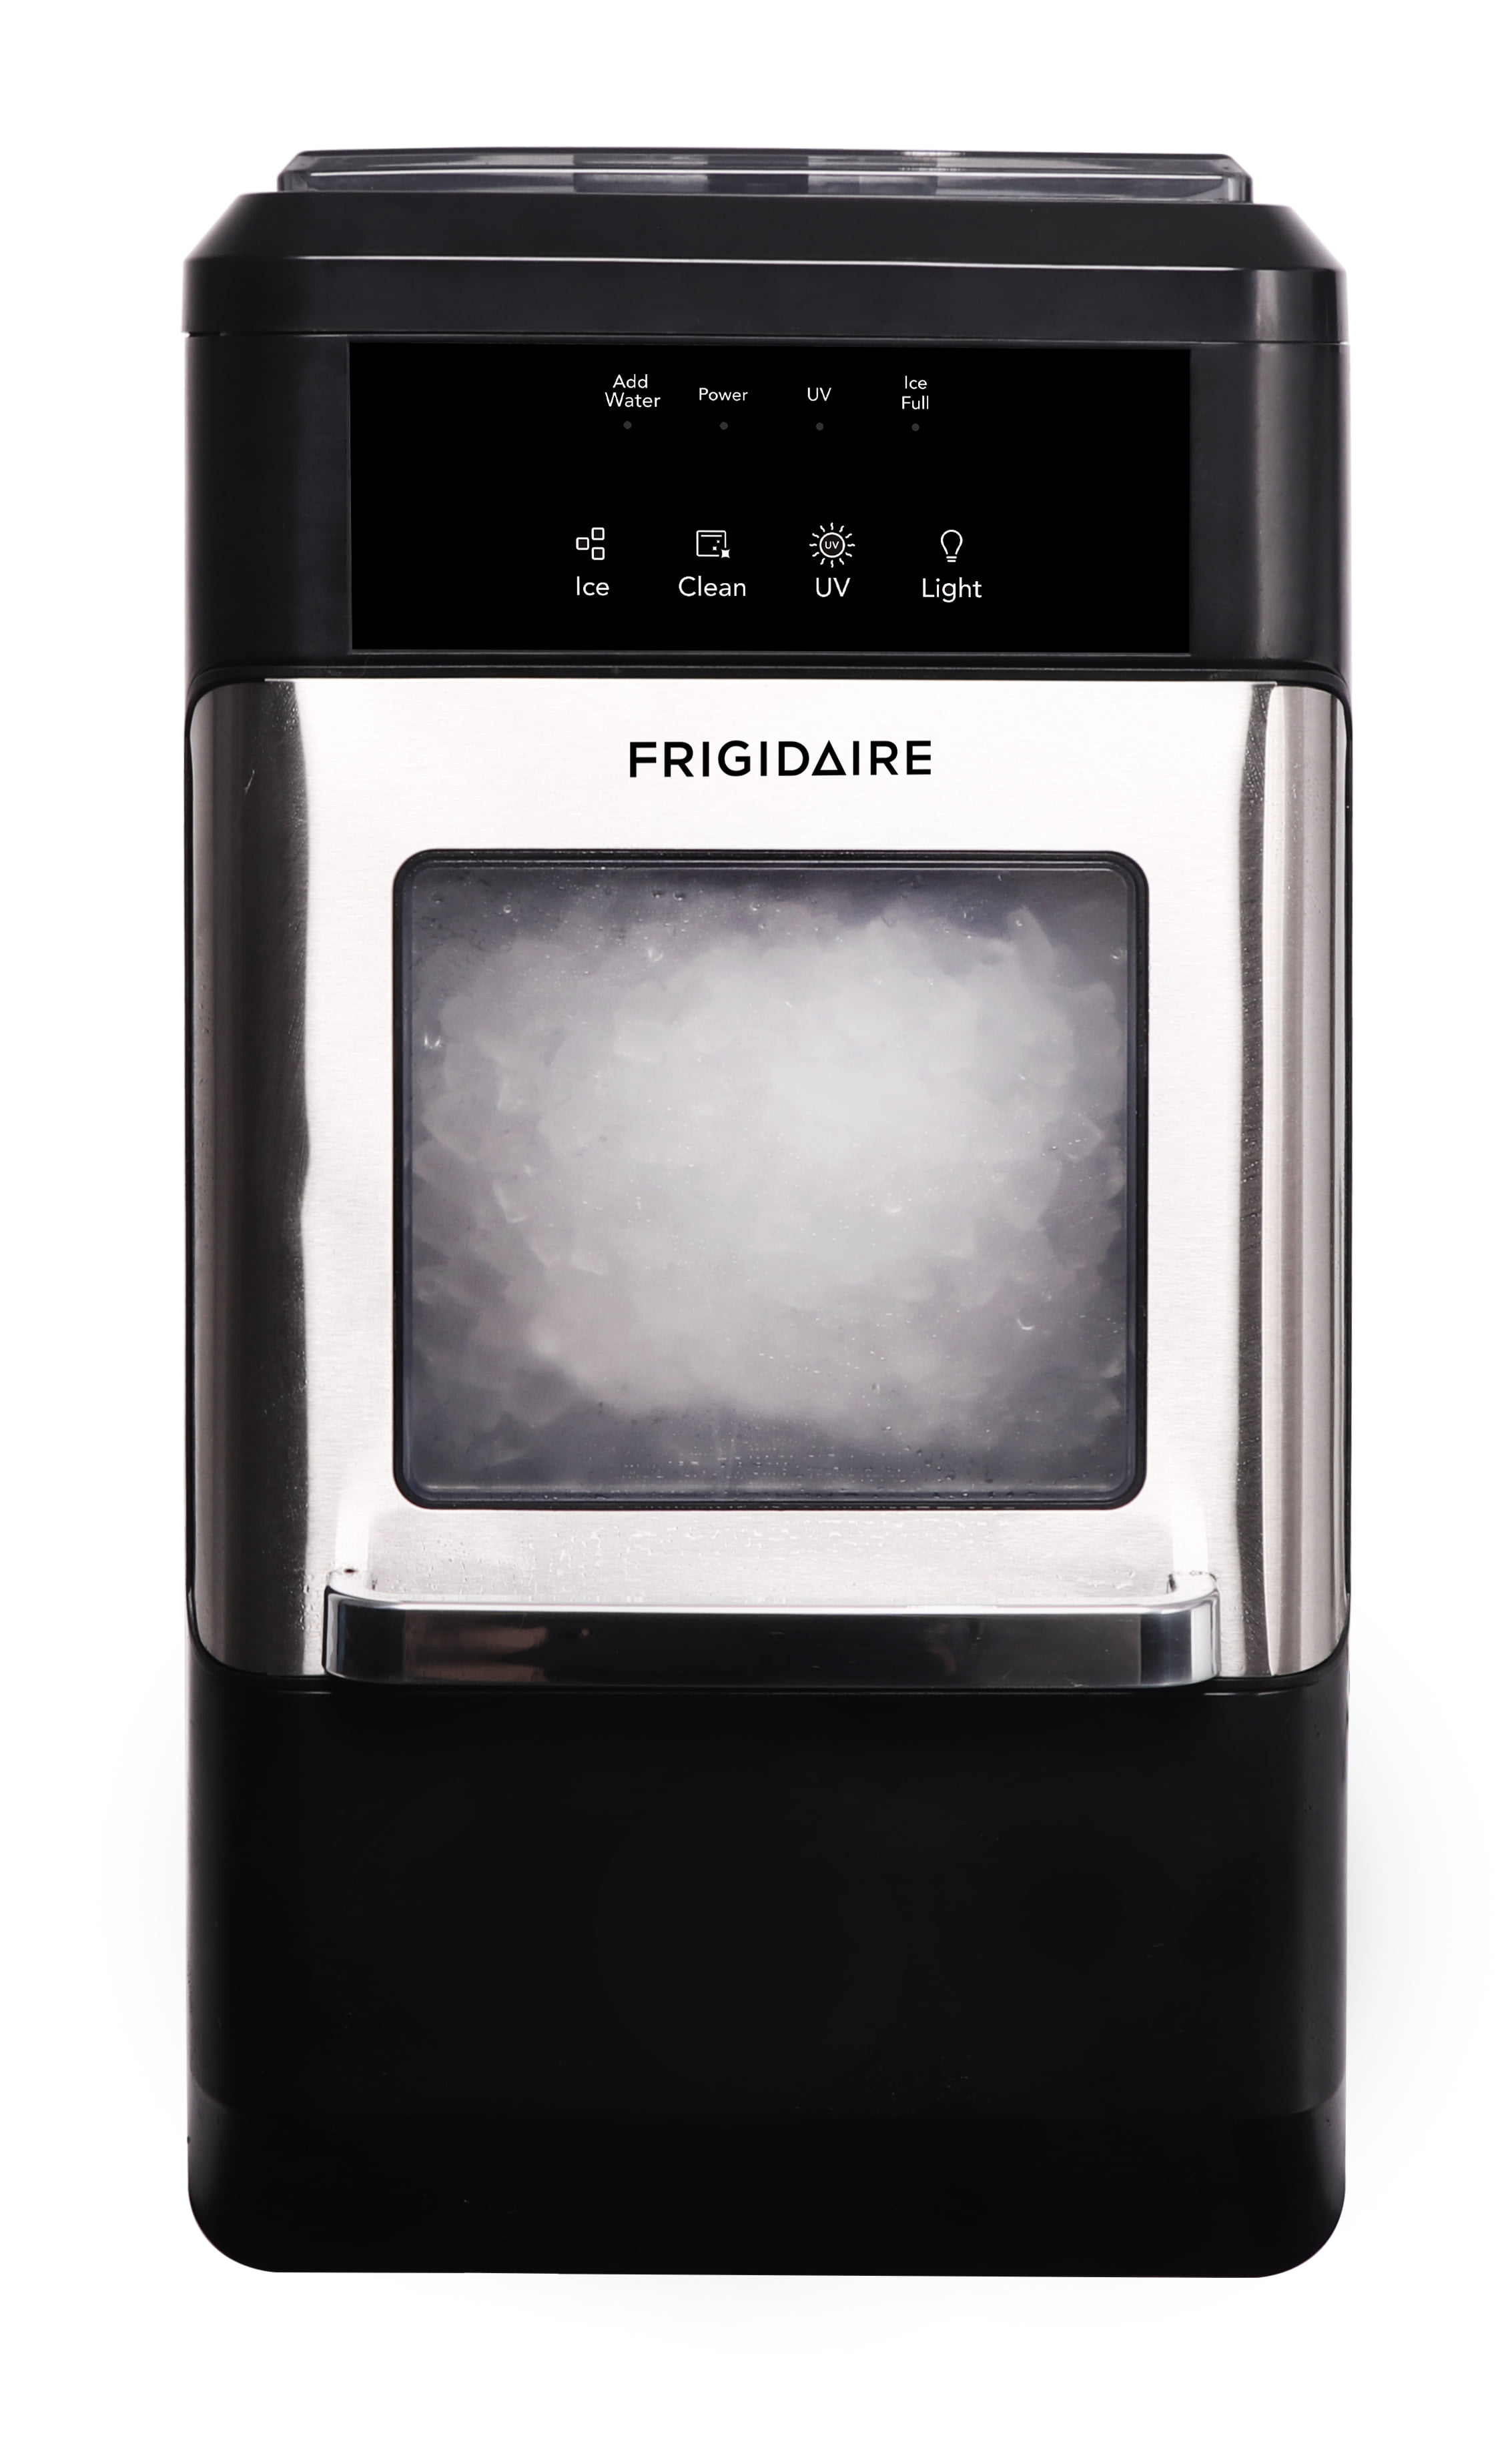 Frigidaire 44 Lbs Crunchy Chewable Nugget Ice Maker Efic235 Stainless Steel Walmart Com Walmart Com